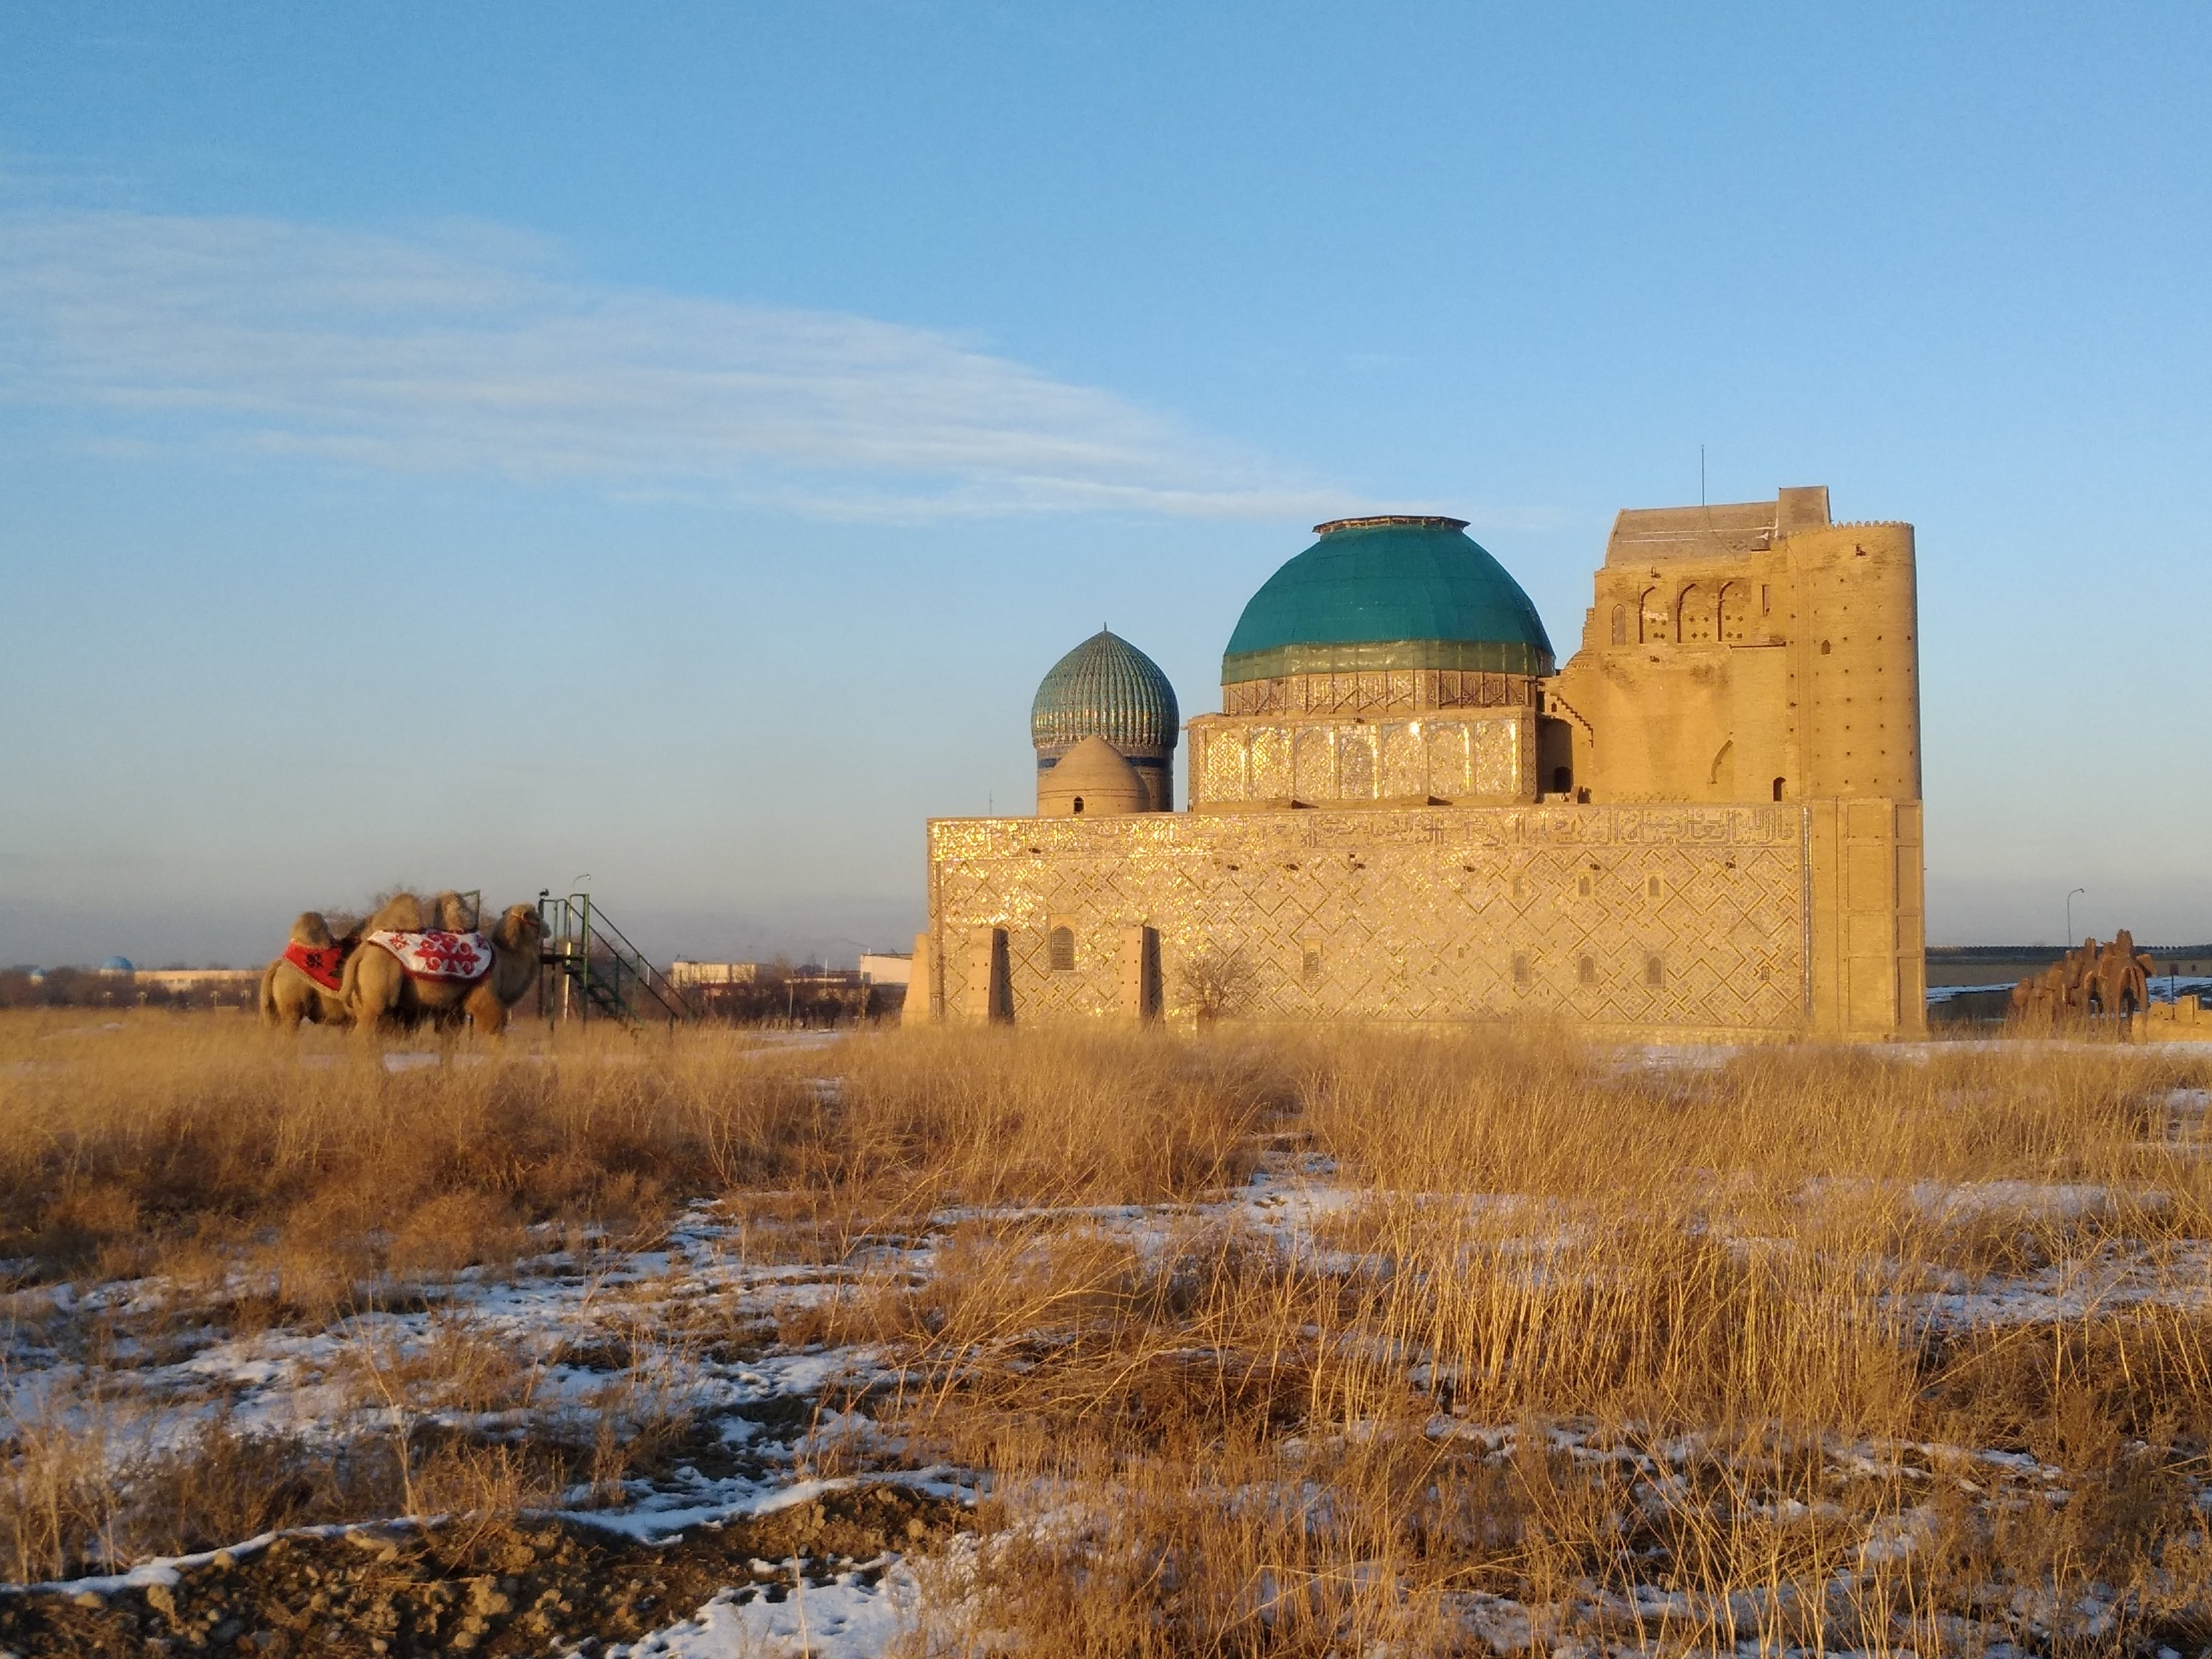 Mausoleum of Mausoleum of Khoja Ahmed Yassawi, Kazakhstan. View from south-west. Heritage Impact Assessment 2020